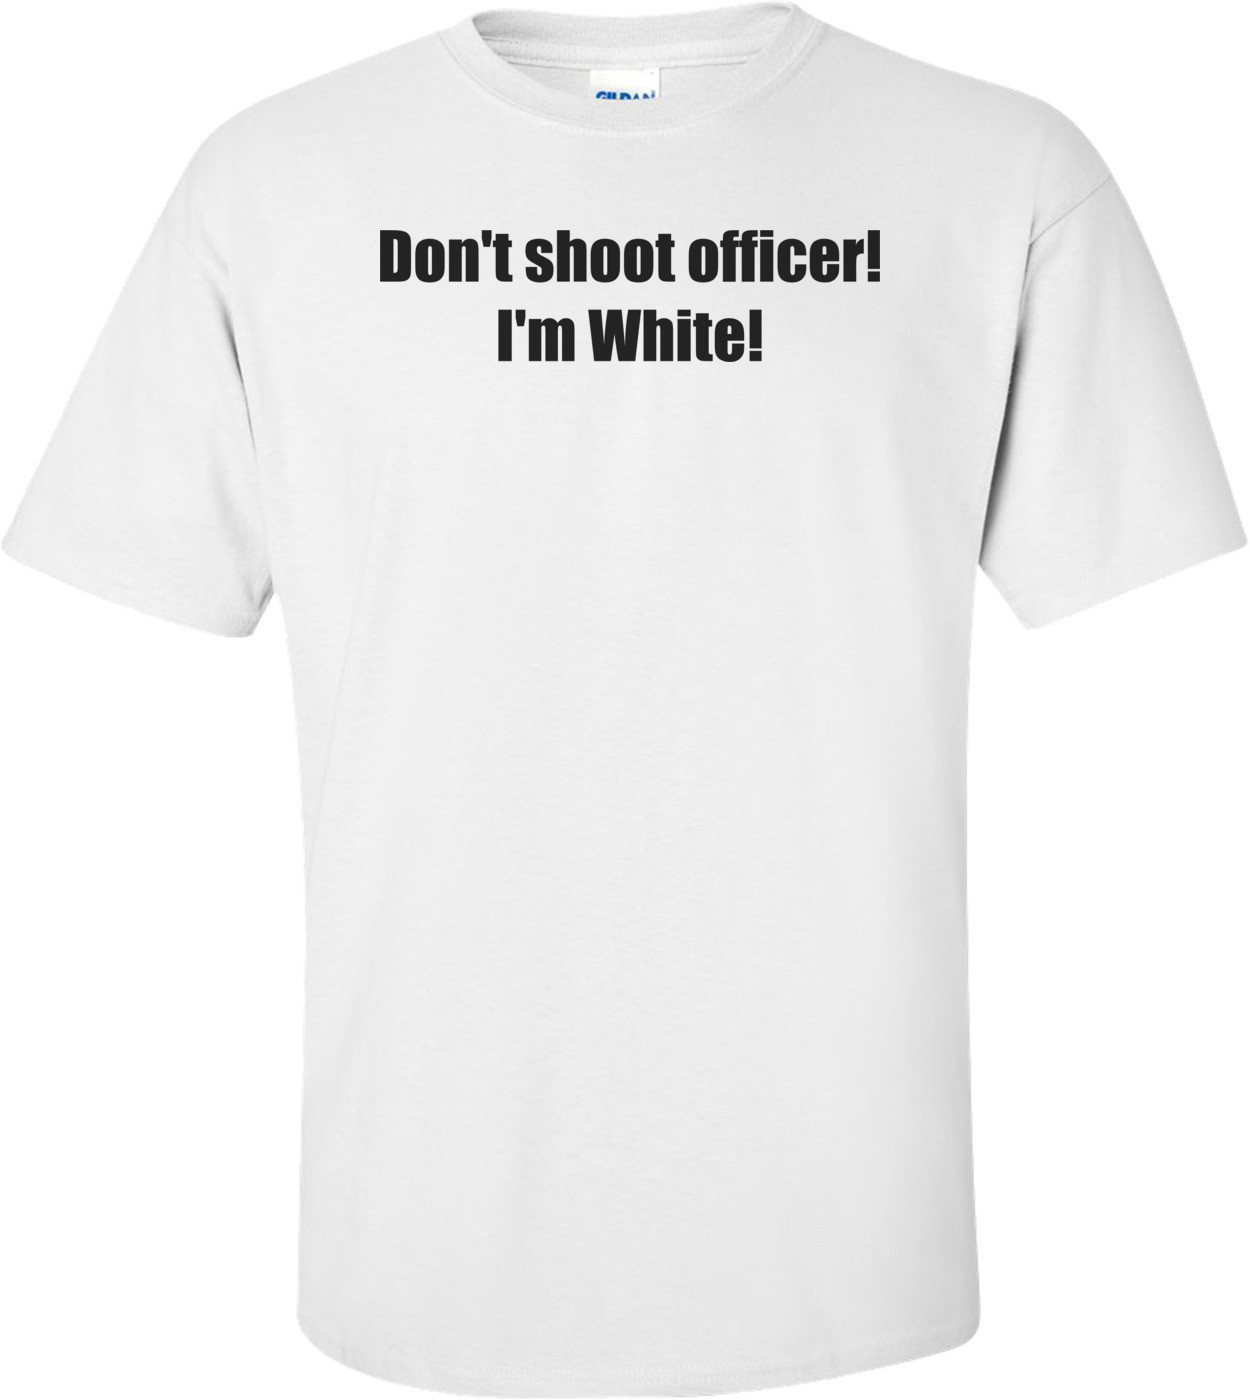 Don't shoot officer! I'm White! Shirt